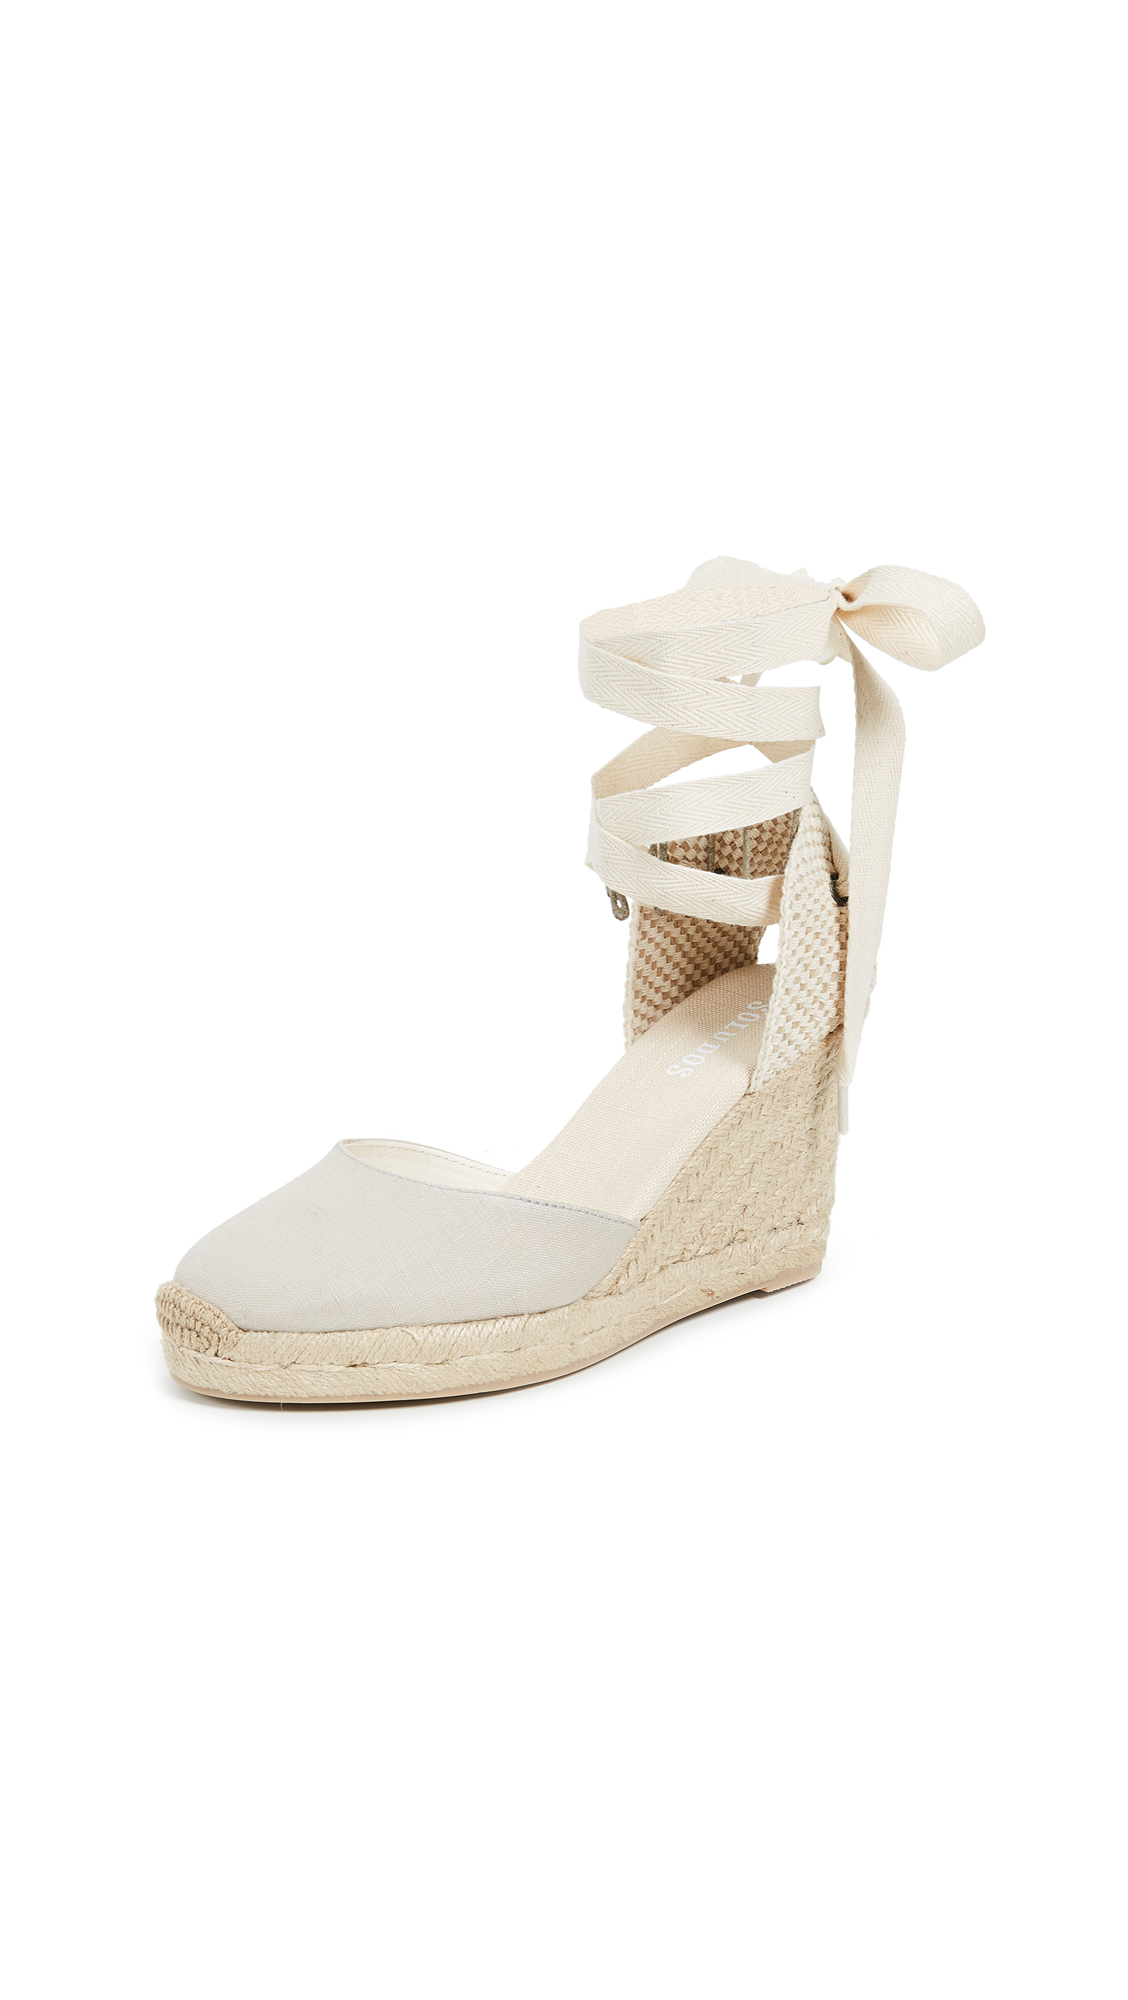 Soludos Tall Wedge Espadrilles - Light Gray